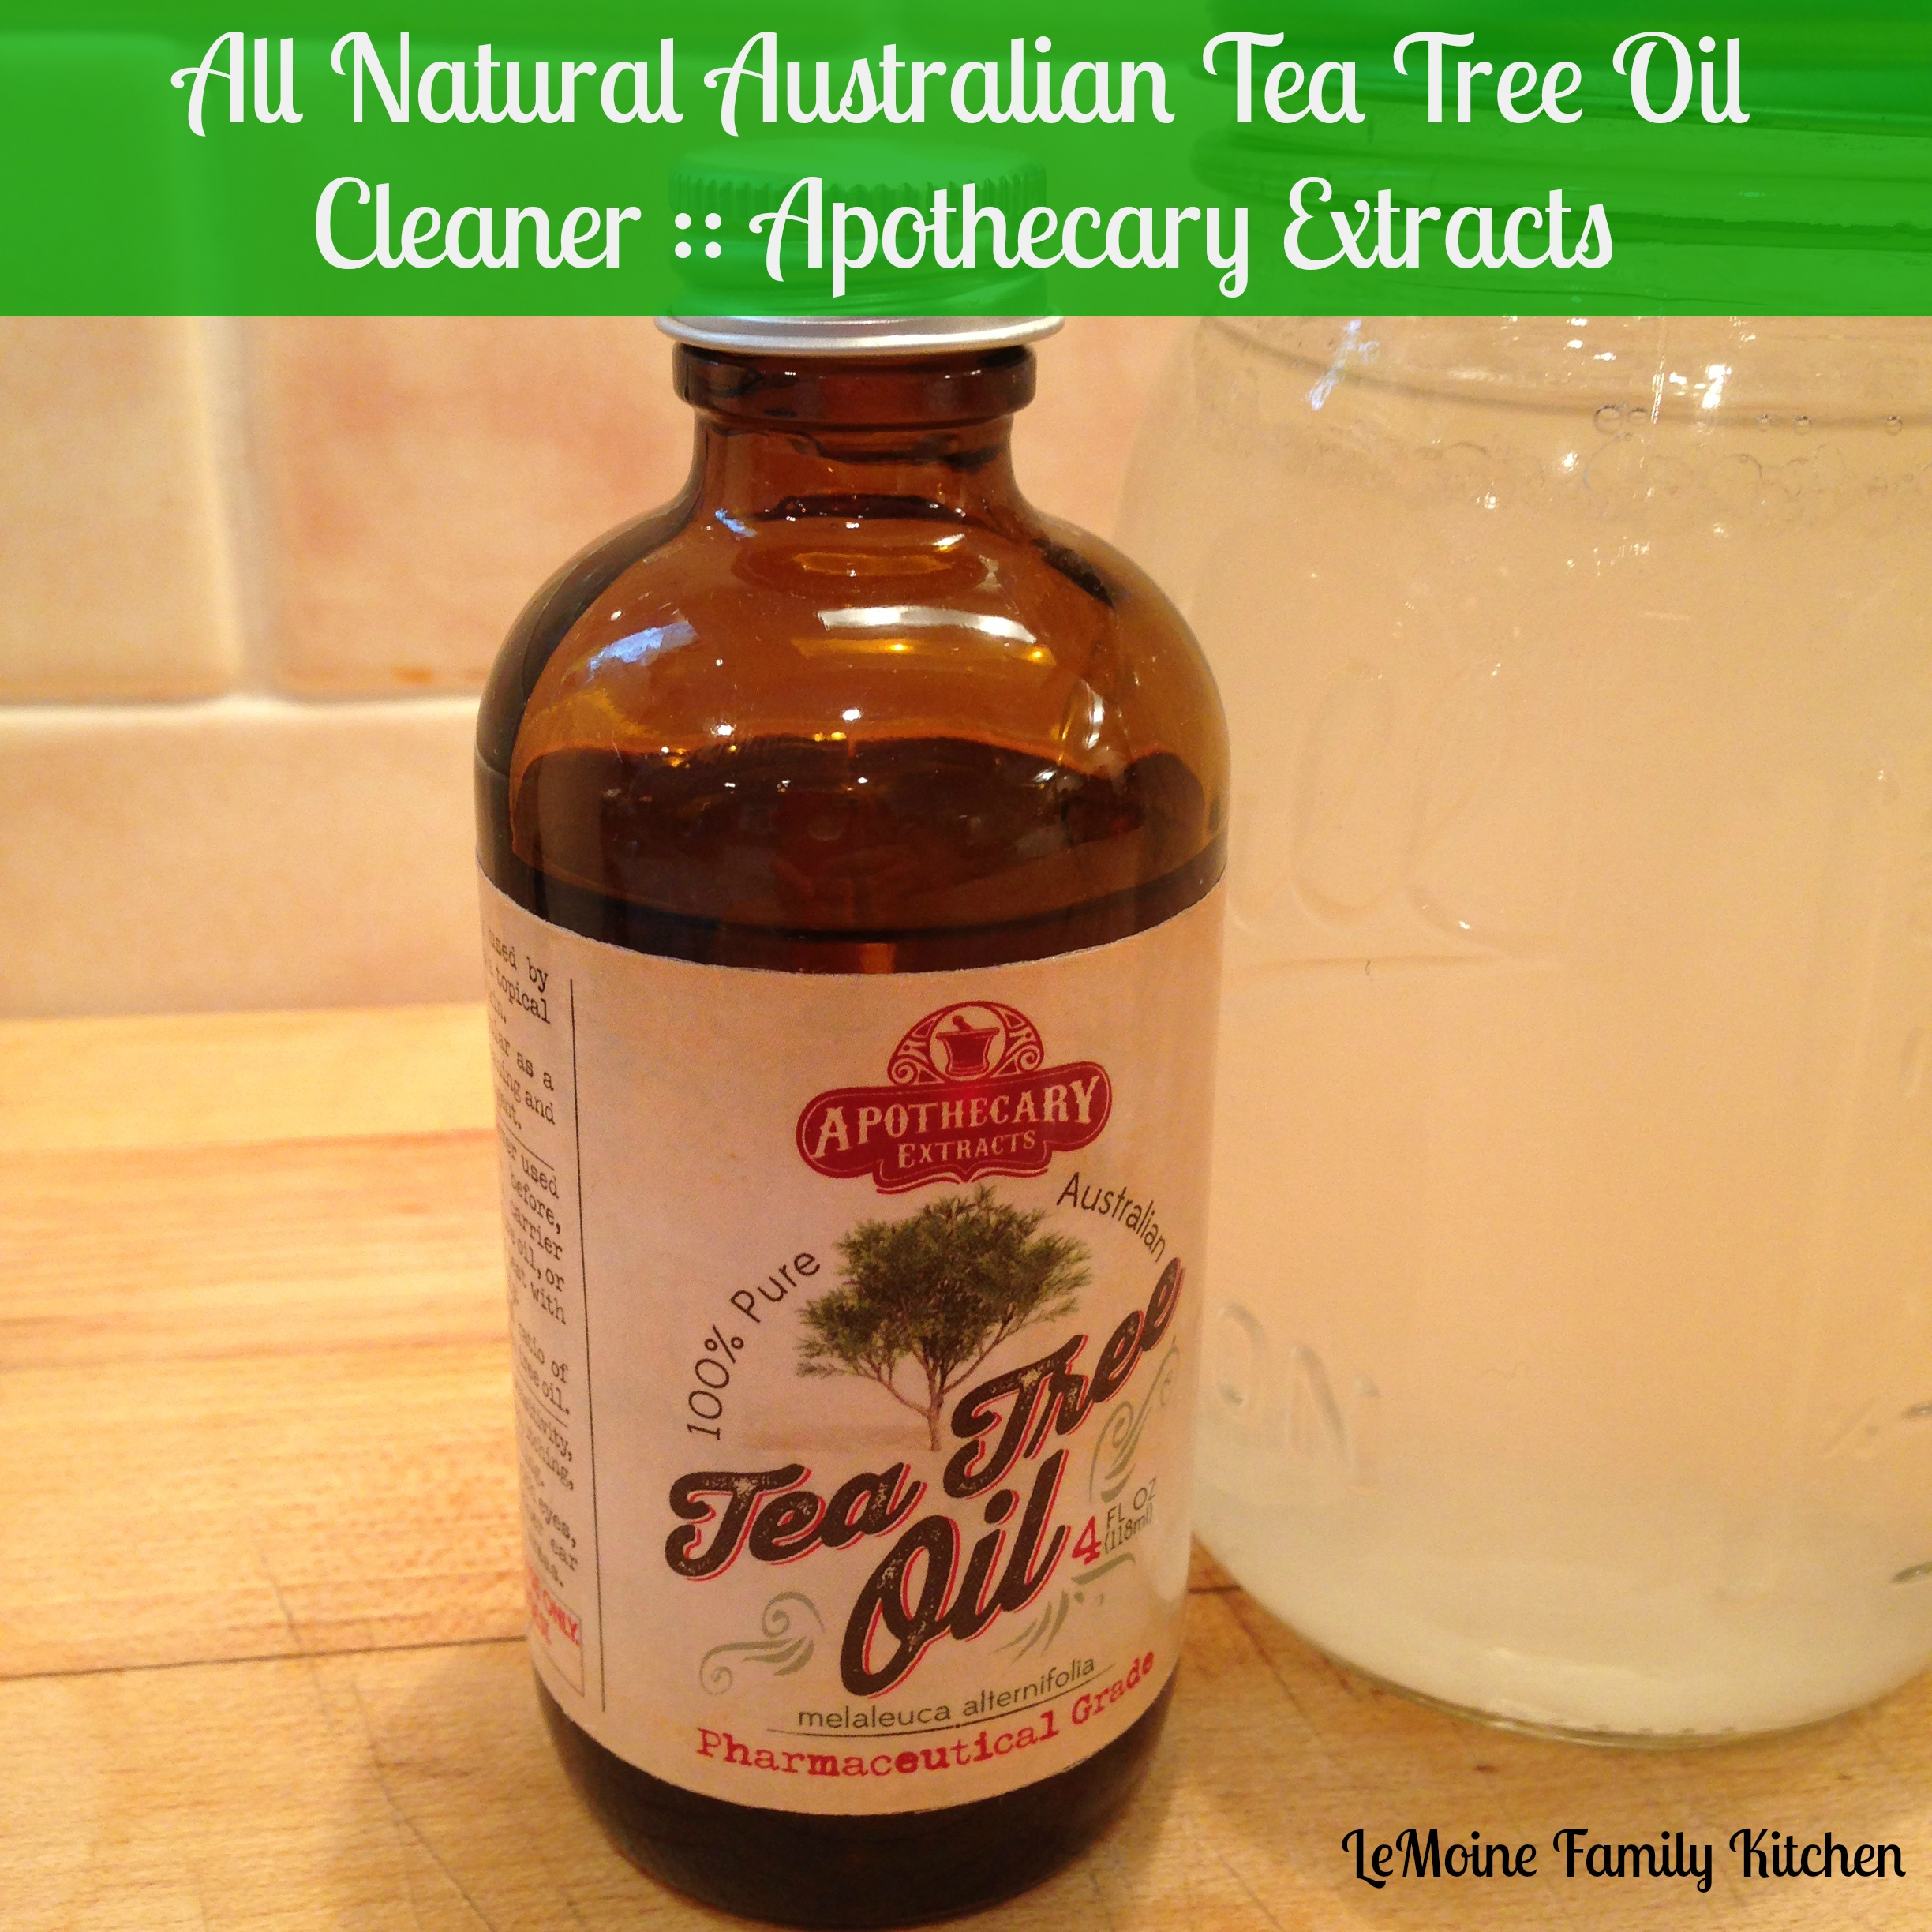 All Natural Australian Tea Tree Oil Cleaner :: Apothecary Extracts